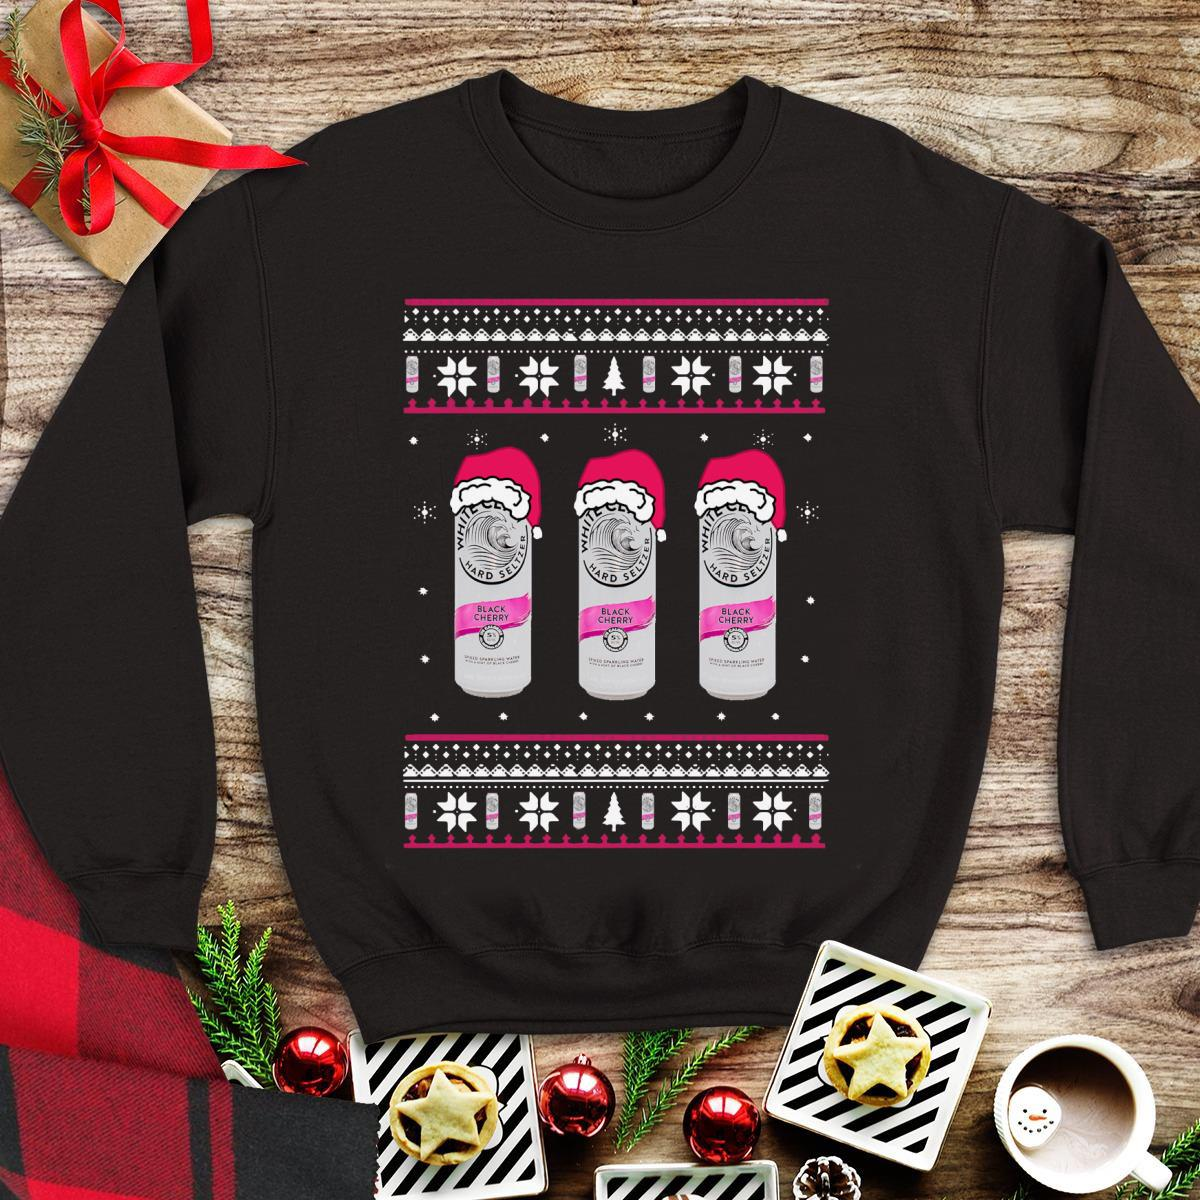 White Claw Black Cherry Ugly Christmas Sweater Shirt 1 1.jpg